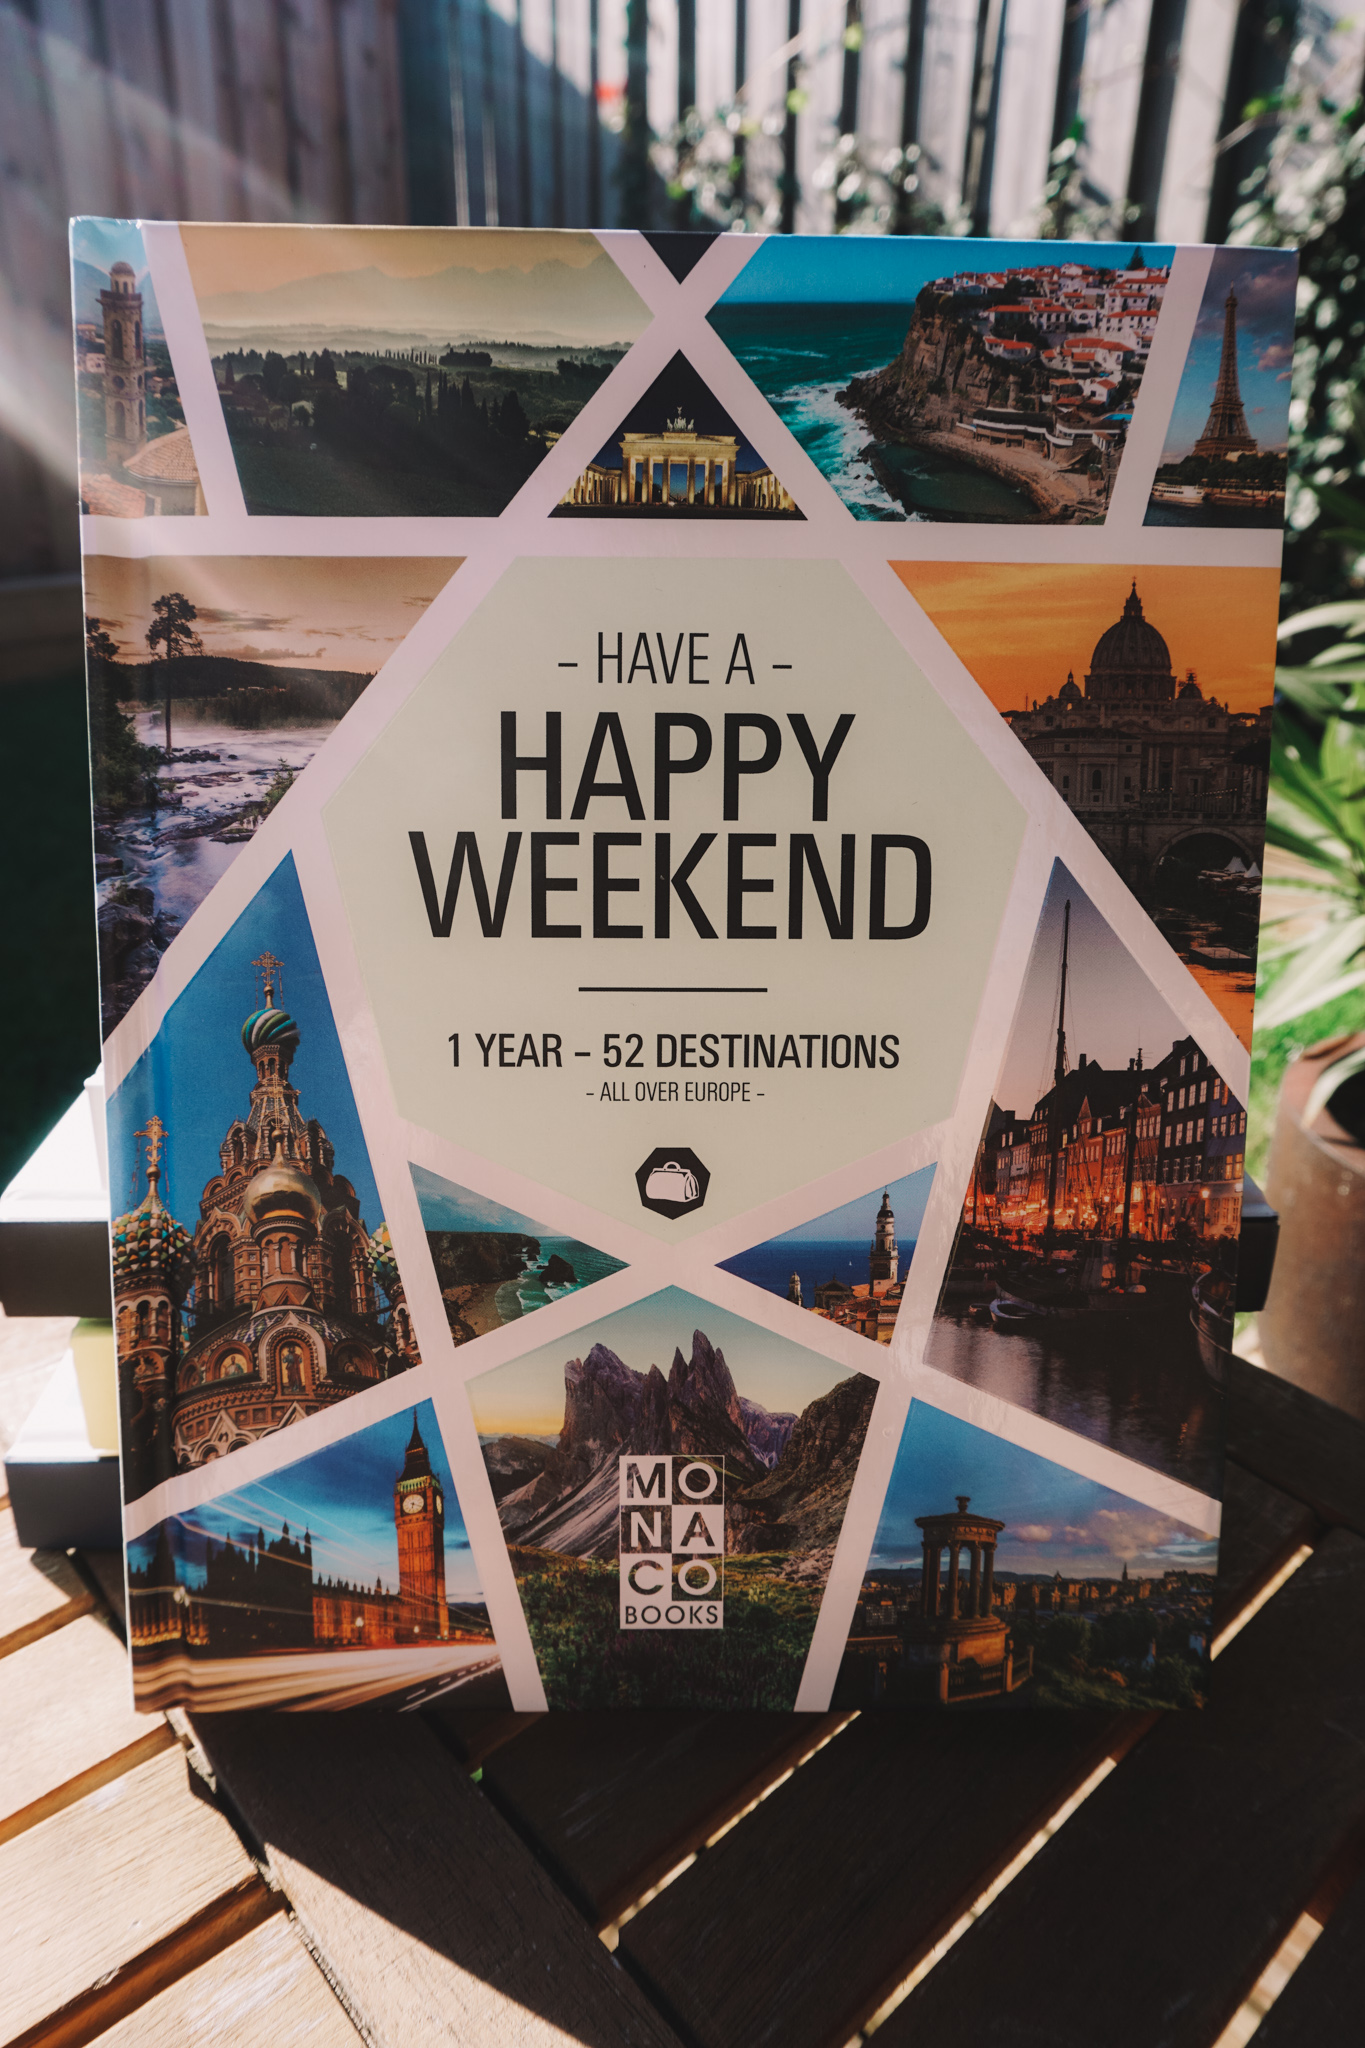 the ultimate travel books to read for travel inspiration, english travel books, dutch travel books, happy weekend, monaco books